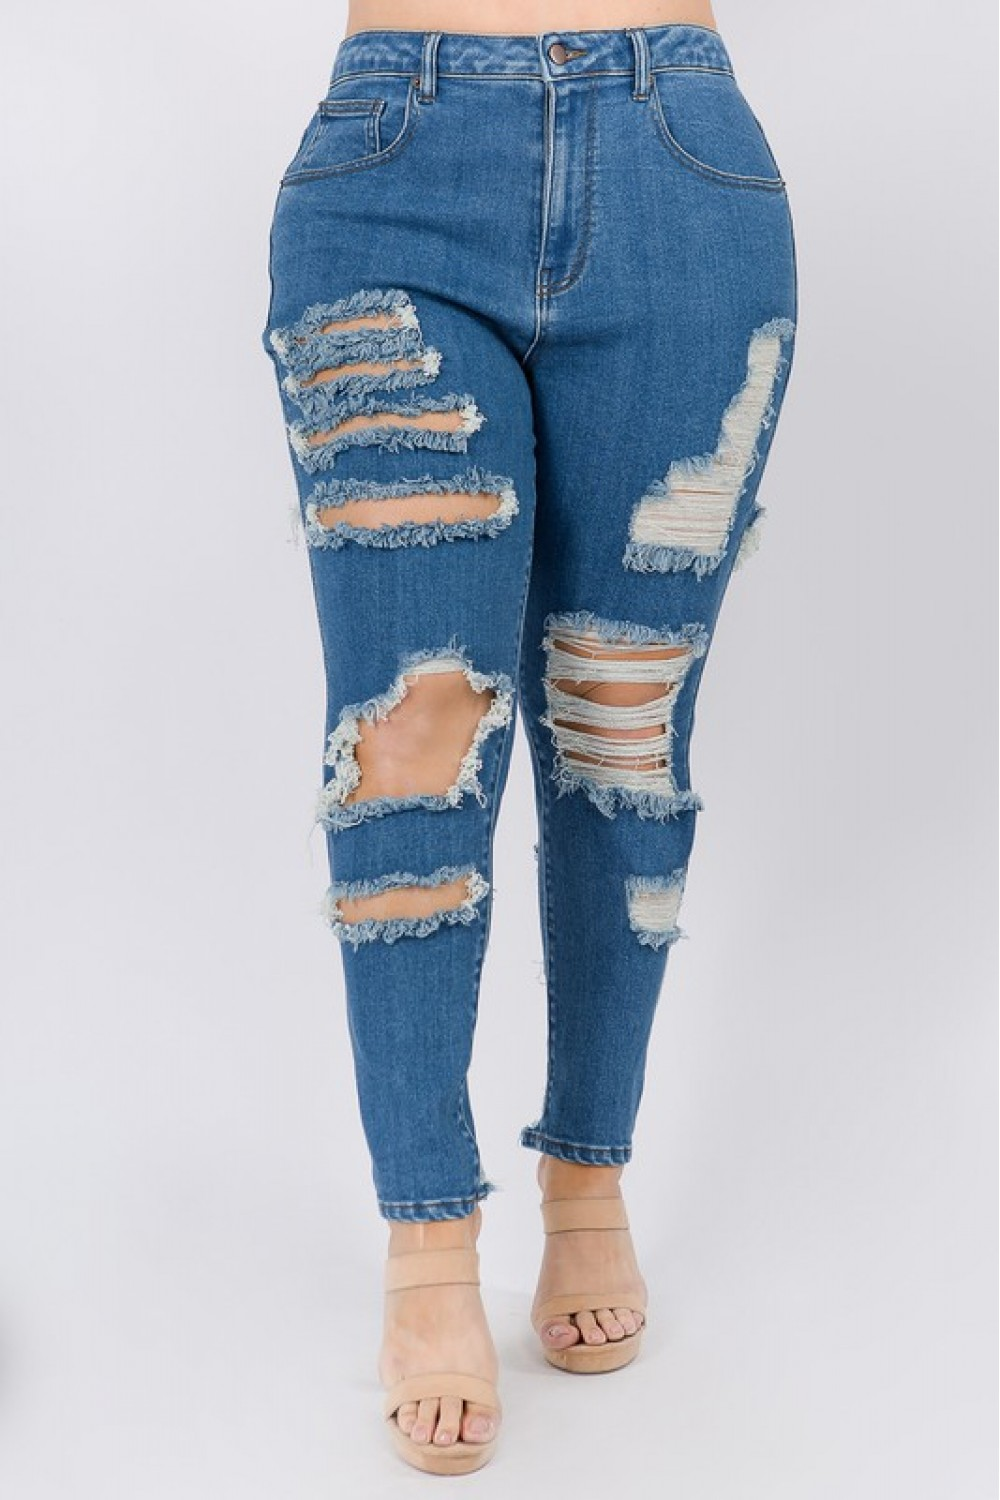 5TH1025<br/>Plus Size High Waist Destroyed Trimmed Jeans.